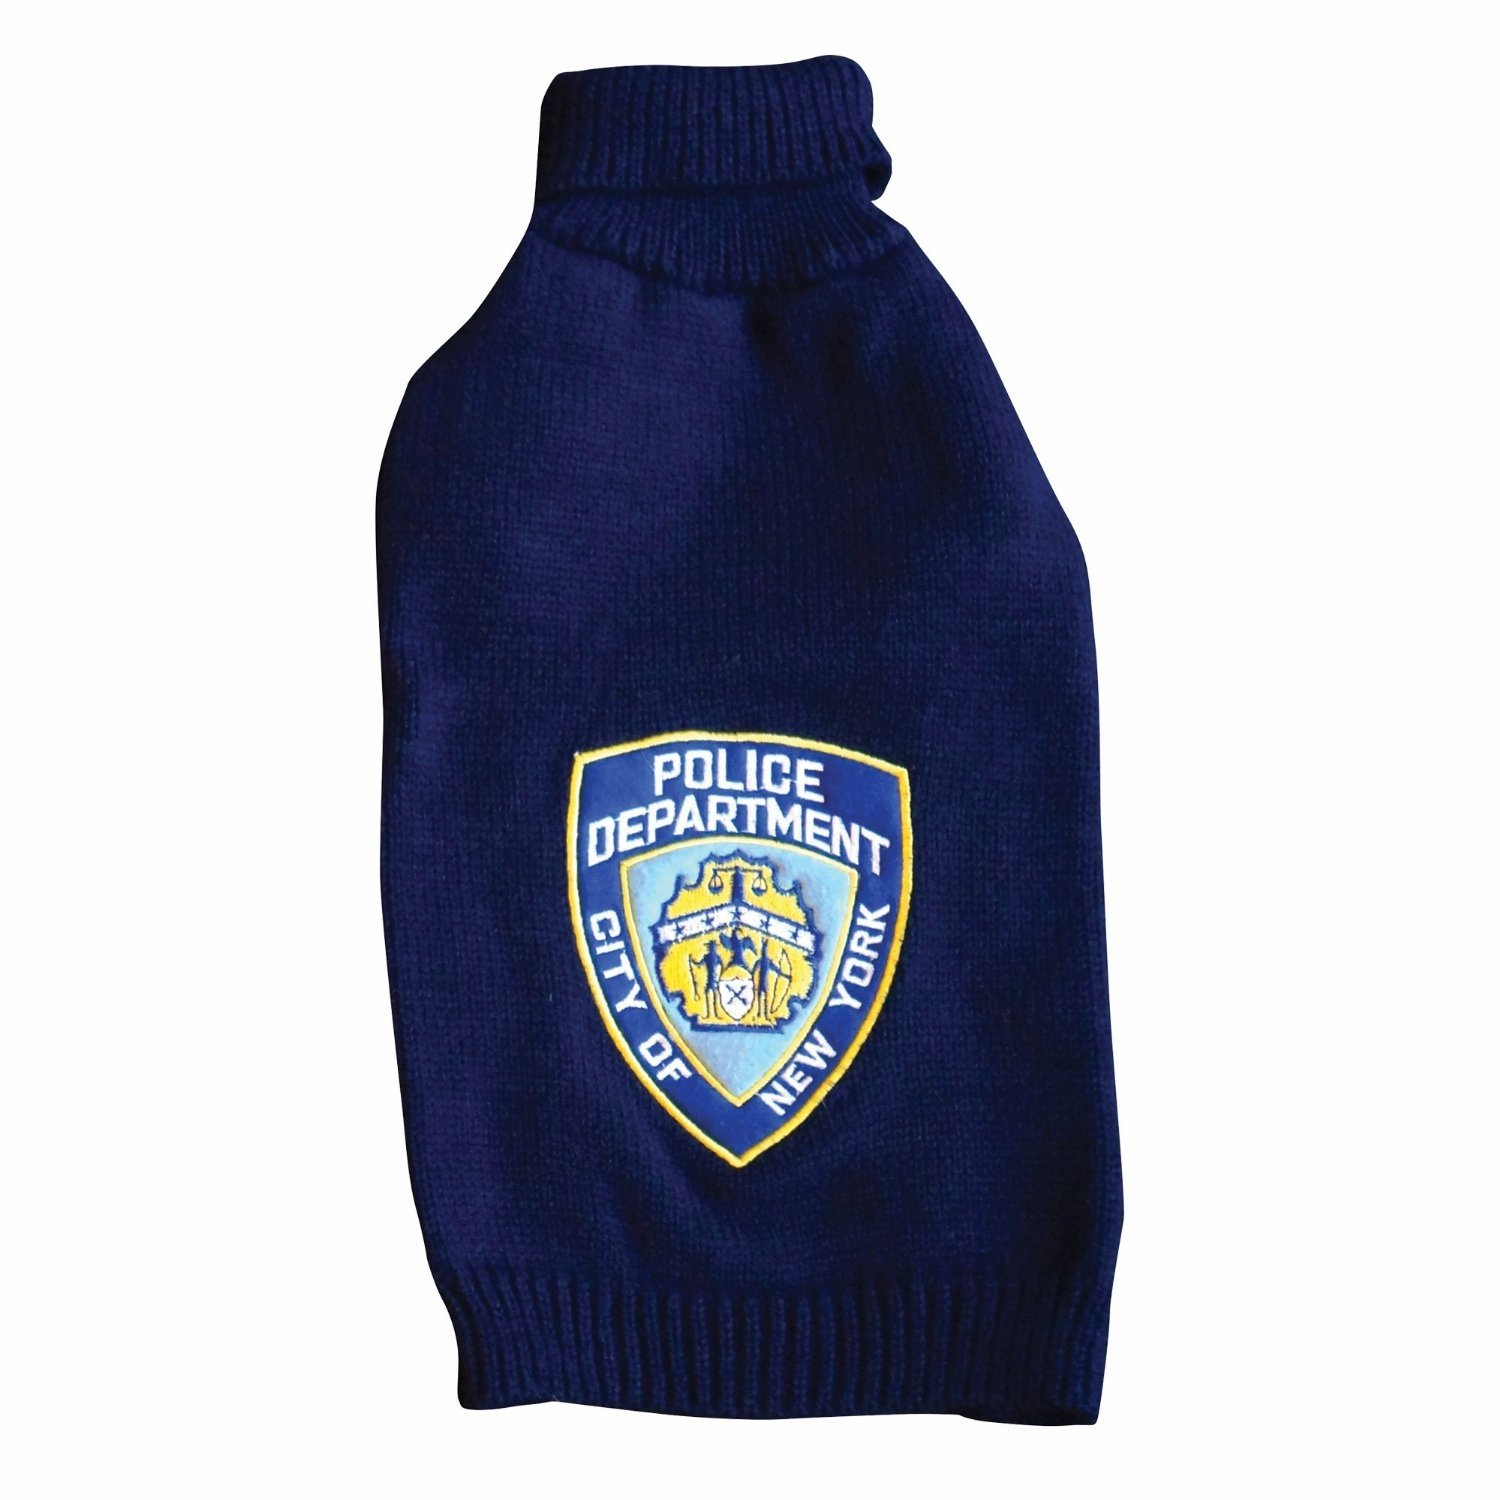 Royal Animals 12258P-XS NYPD Pet Sweater, X-Small, Navy Blue by ROYAL ANIMALS (Image #1)